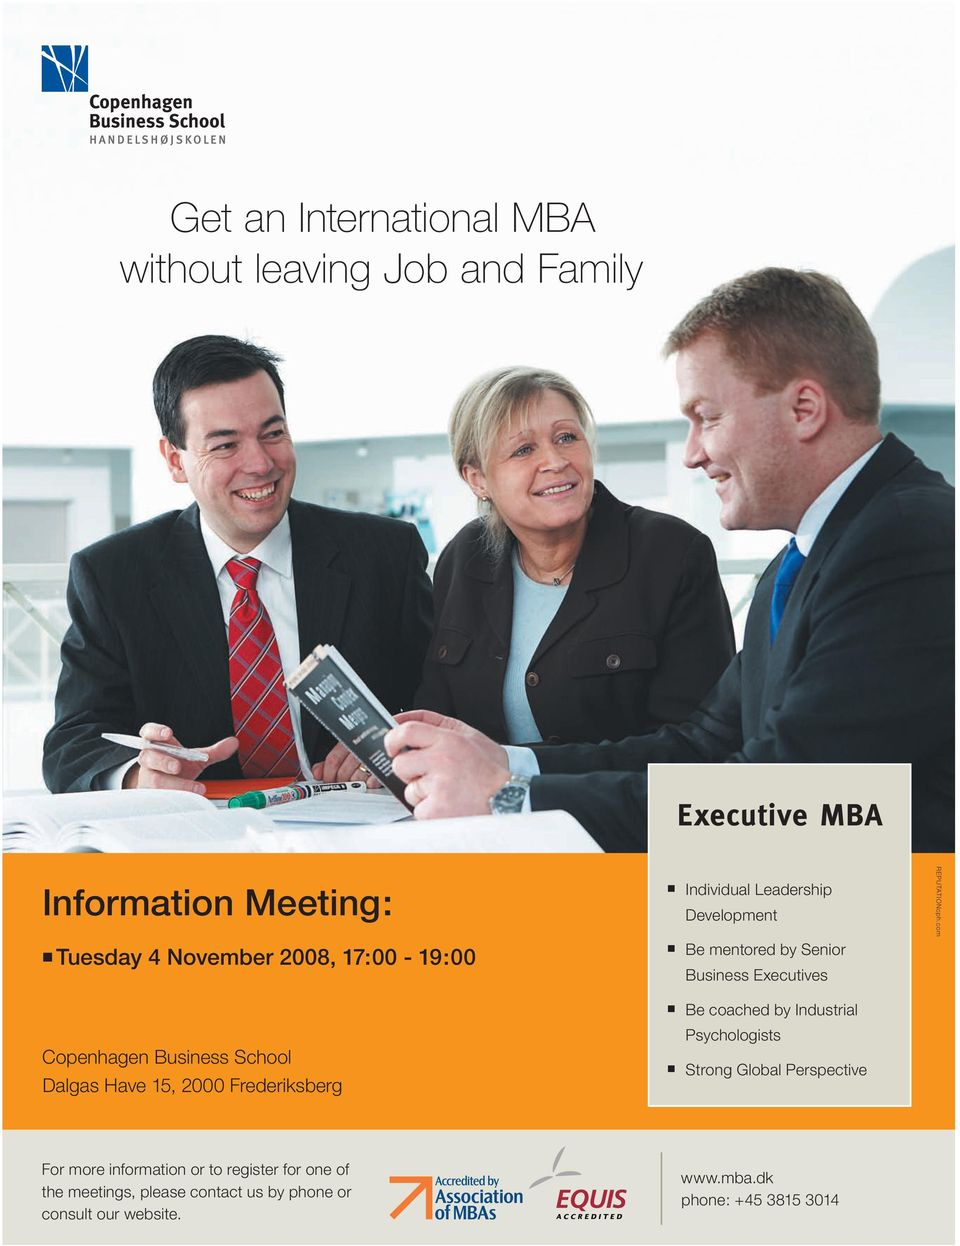 com Tuesday 4 November 2008, 17:00-19:00 Be mentored by Senior Business Executives Be coached by Industrial